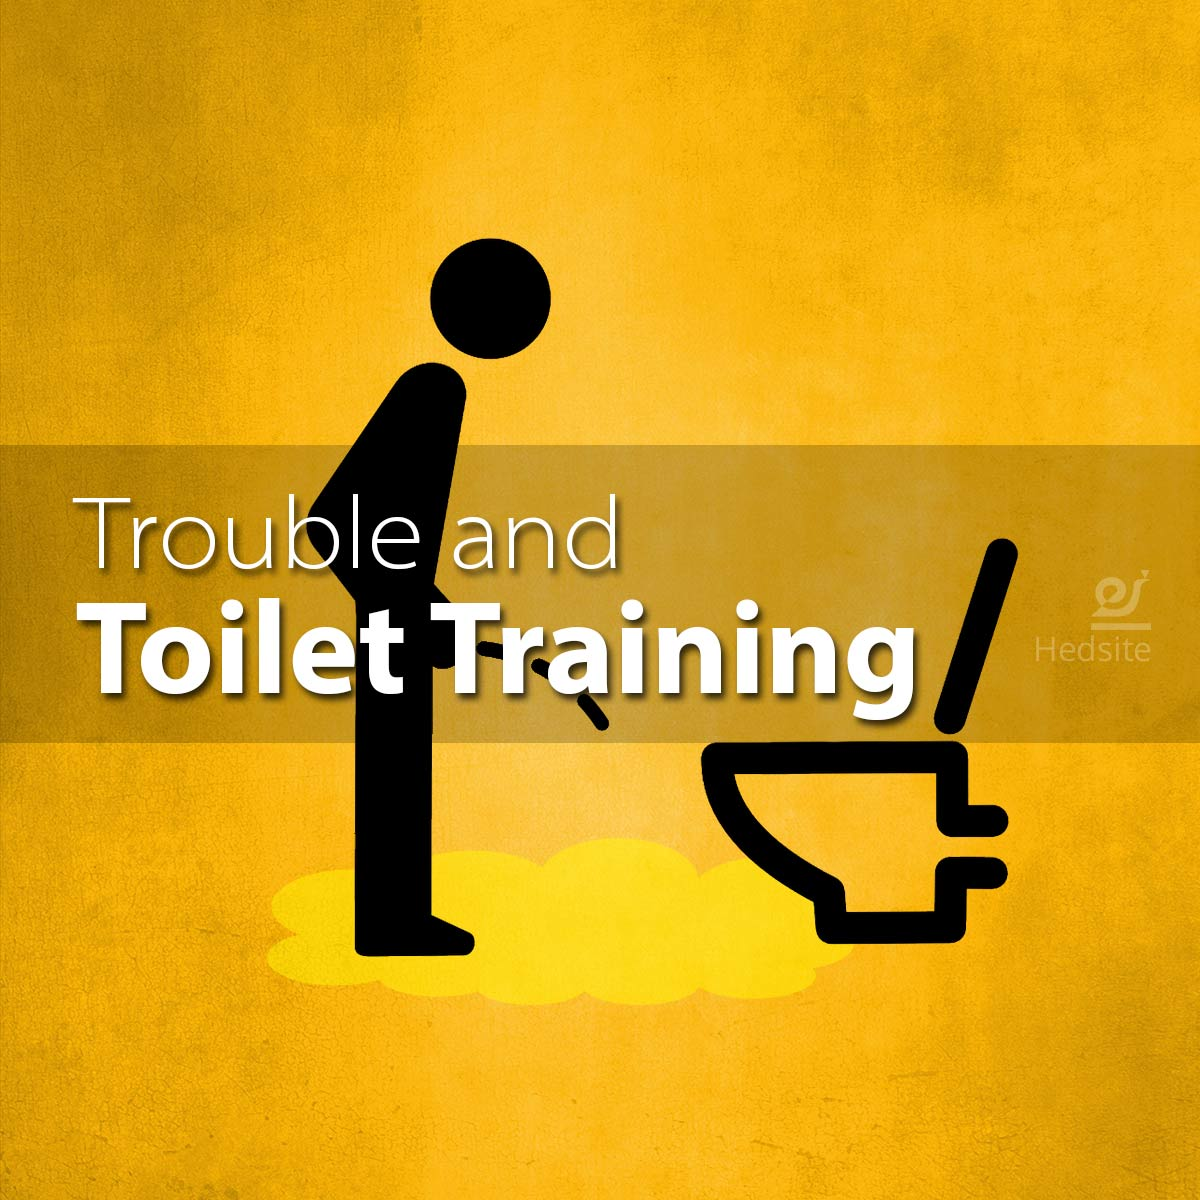 Trouble and Toilet Training